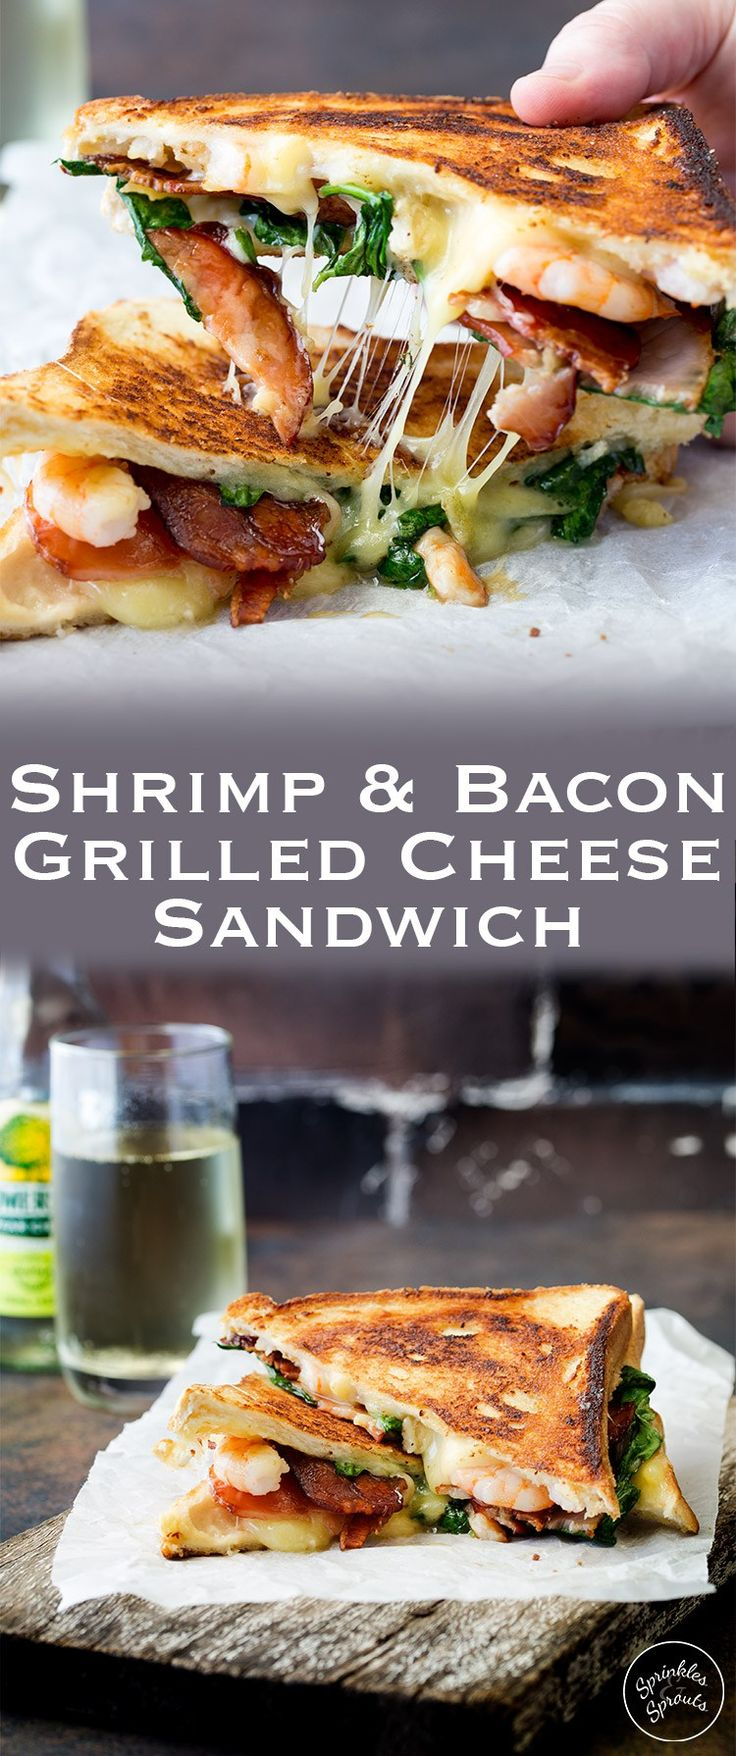 Is there anything more comforting that a grilled cheese sandwich??? And this shrimp and bacon grilled cheese sandwich takes the humble grilled cheese up a level! #SundaySupper  This is a gourmet grilled cheese sandwich!